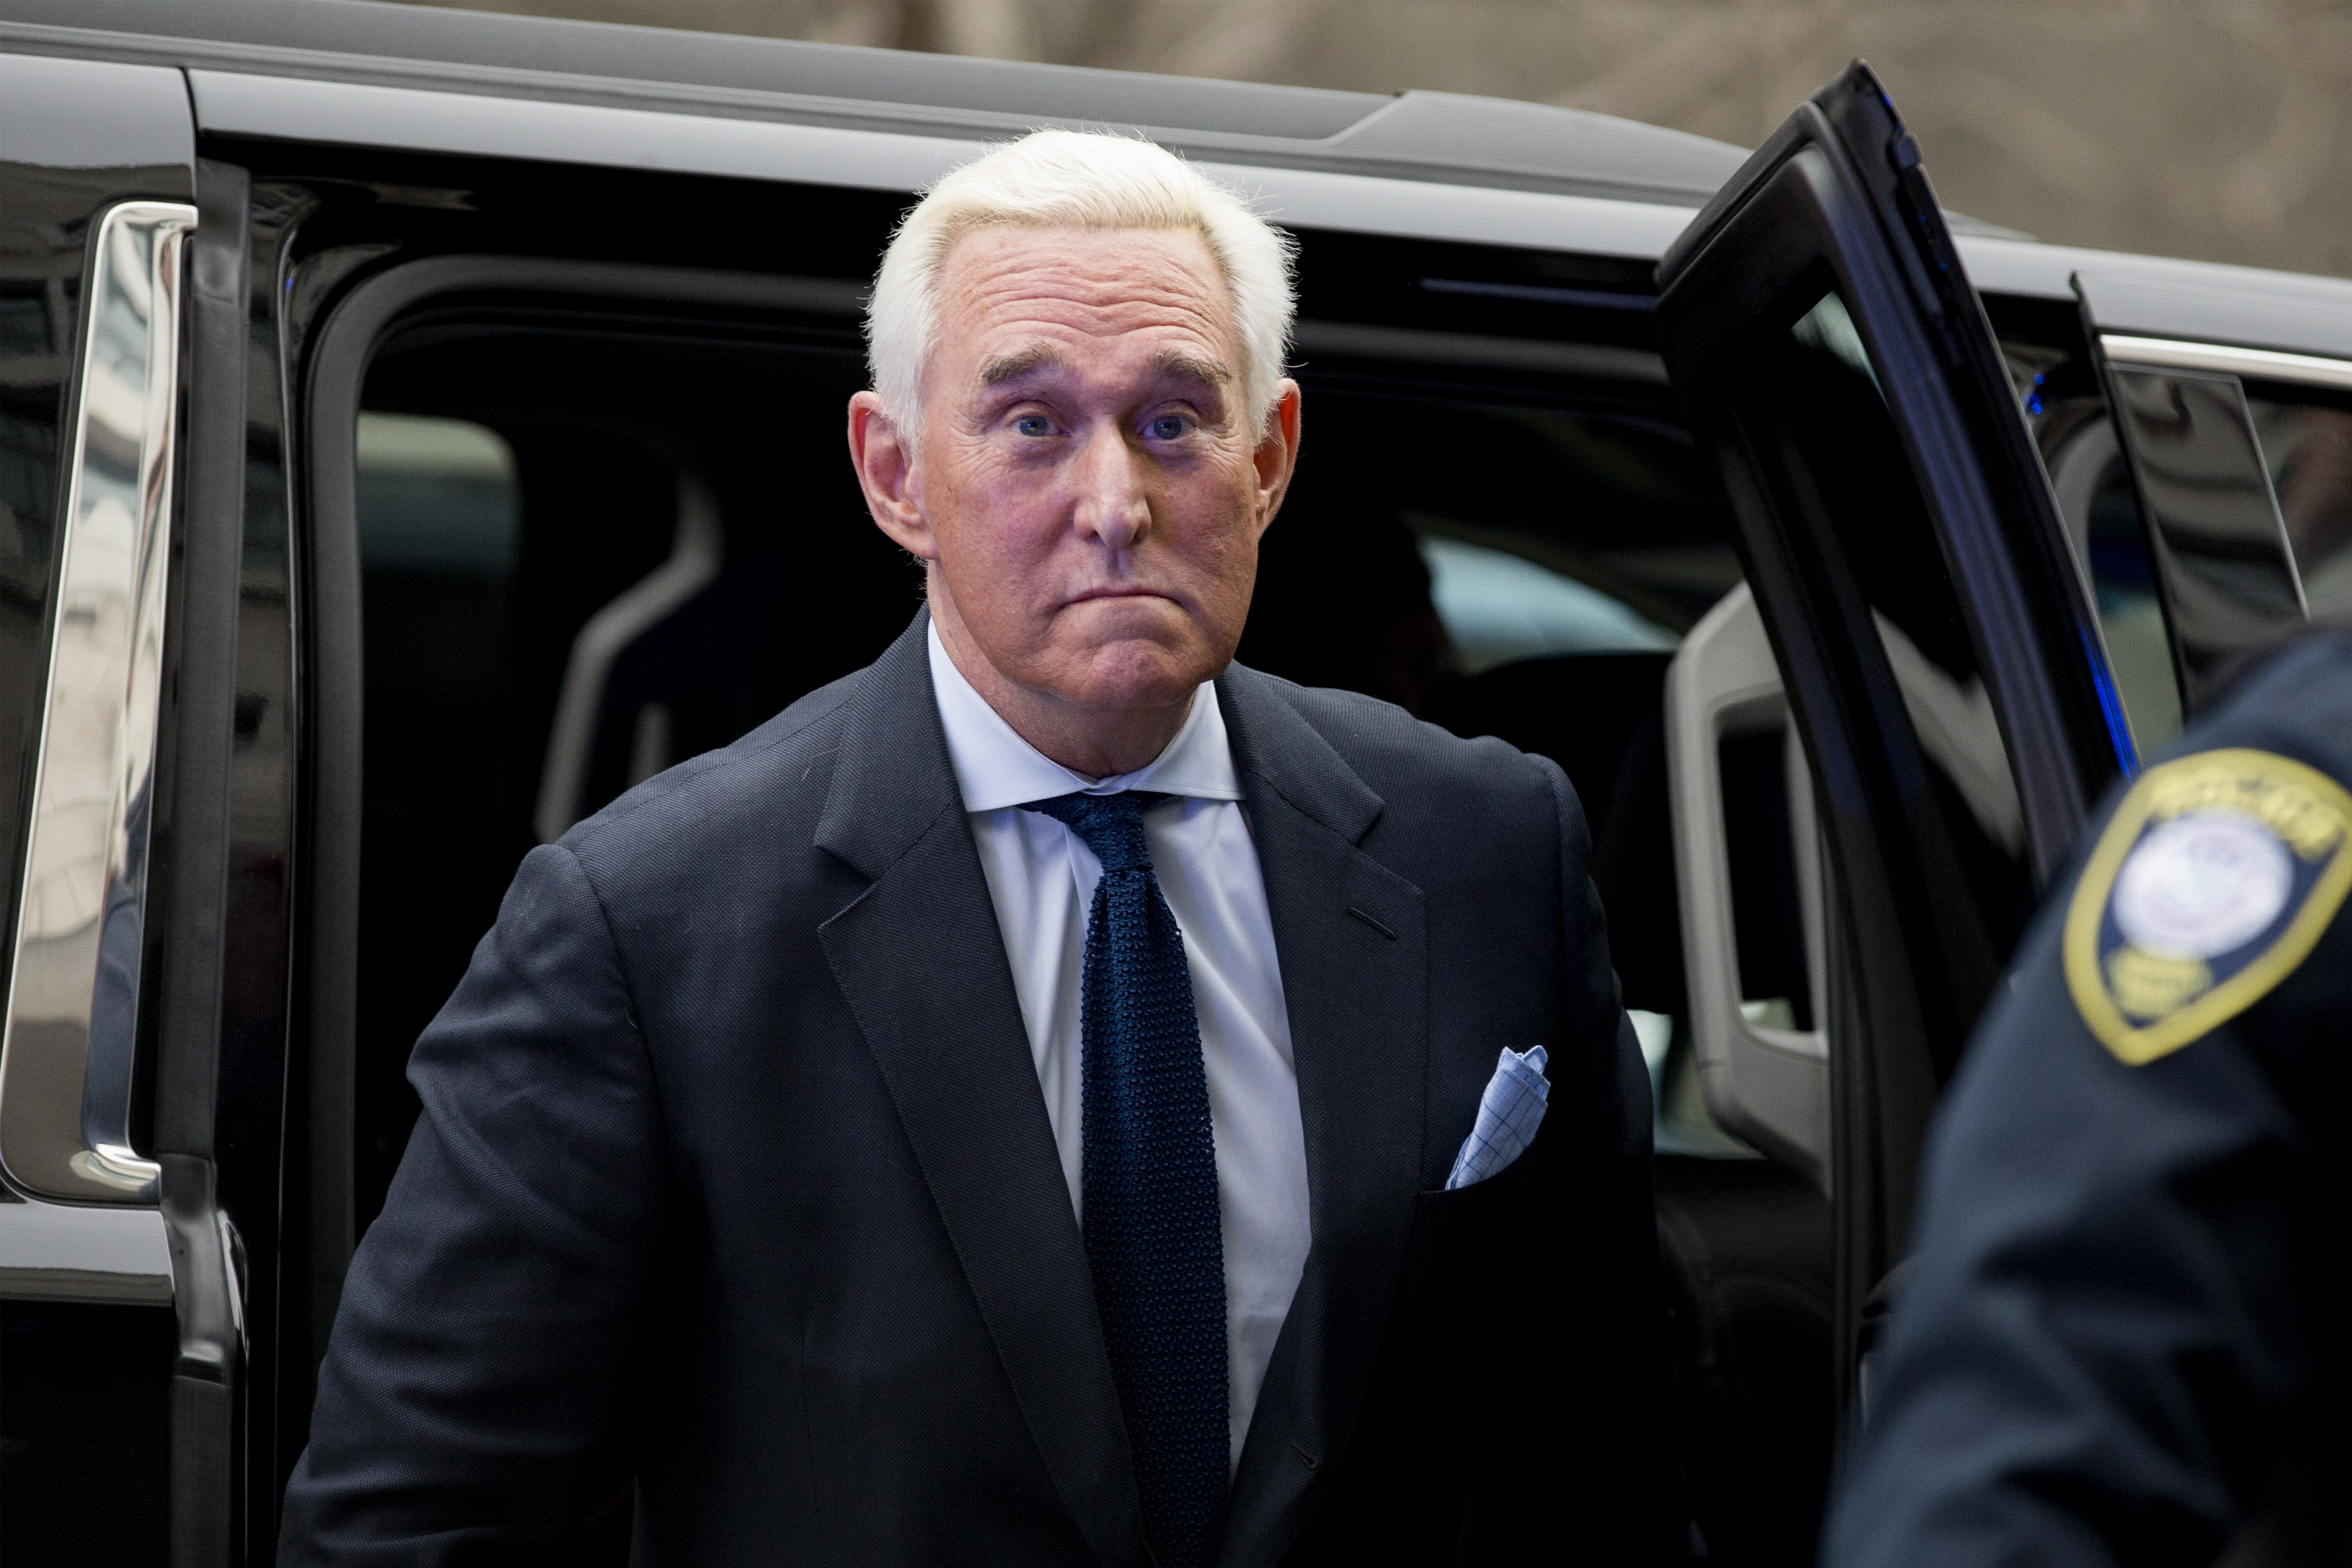 Roger Stone is facing jail, but the length of his sentence is causing friction in US legal circles.